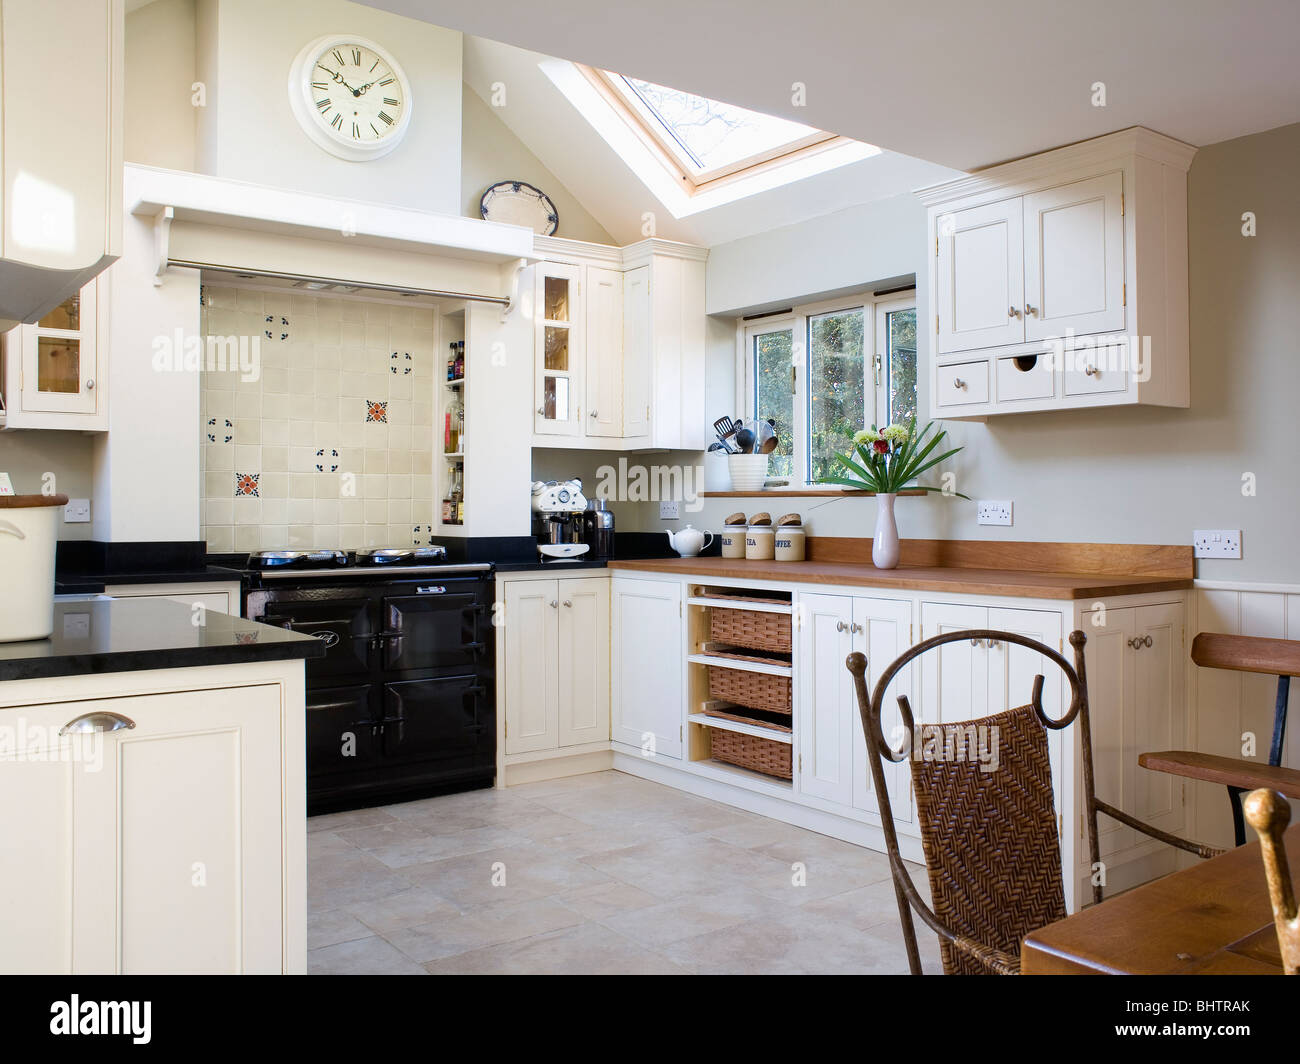 Limestone Flooring In Traditional Cream Kitchen Extension With Black Aga Oven Stock Photo Alamy